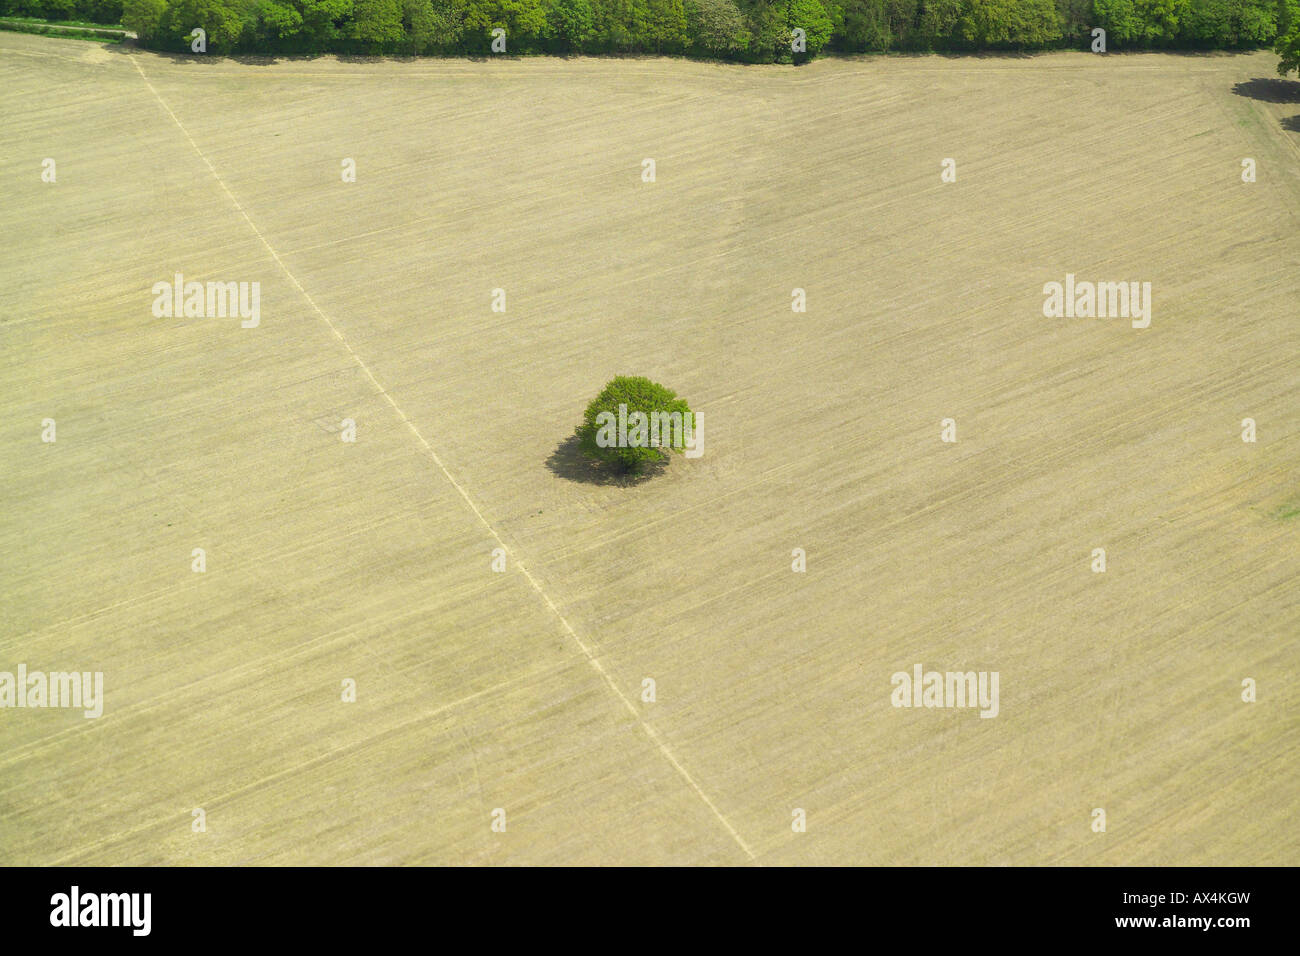 Aerial view of a single tree in a middle of a harvested field Stock Photo